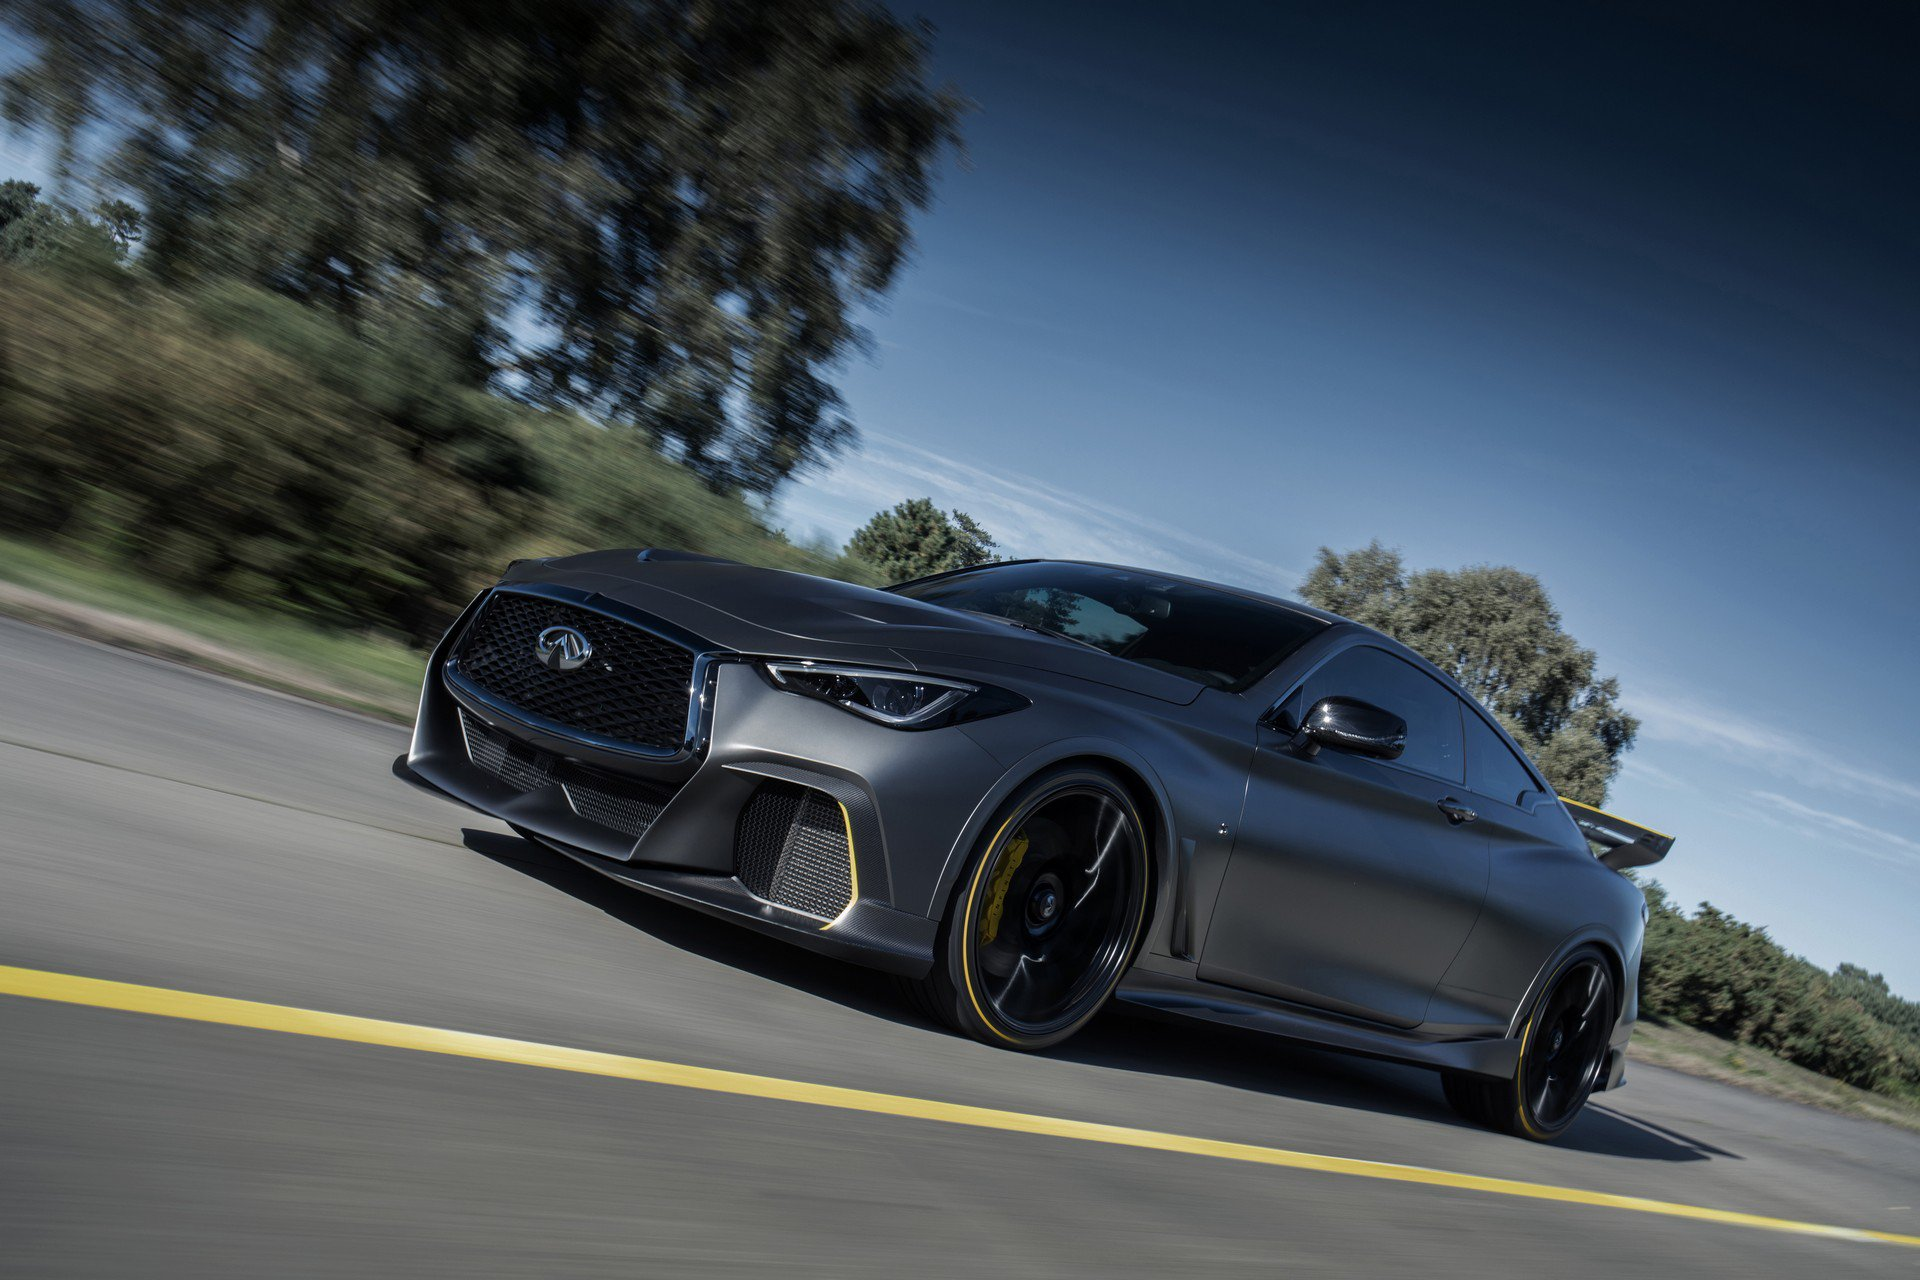 Infiniti Project Black S Prototype (26)